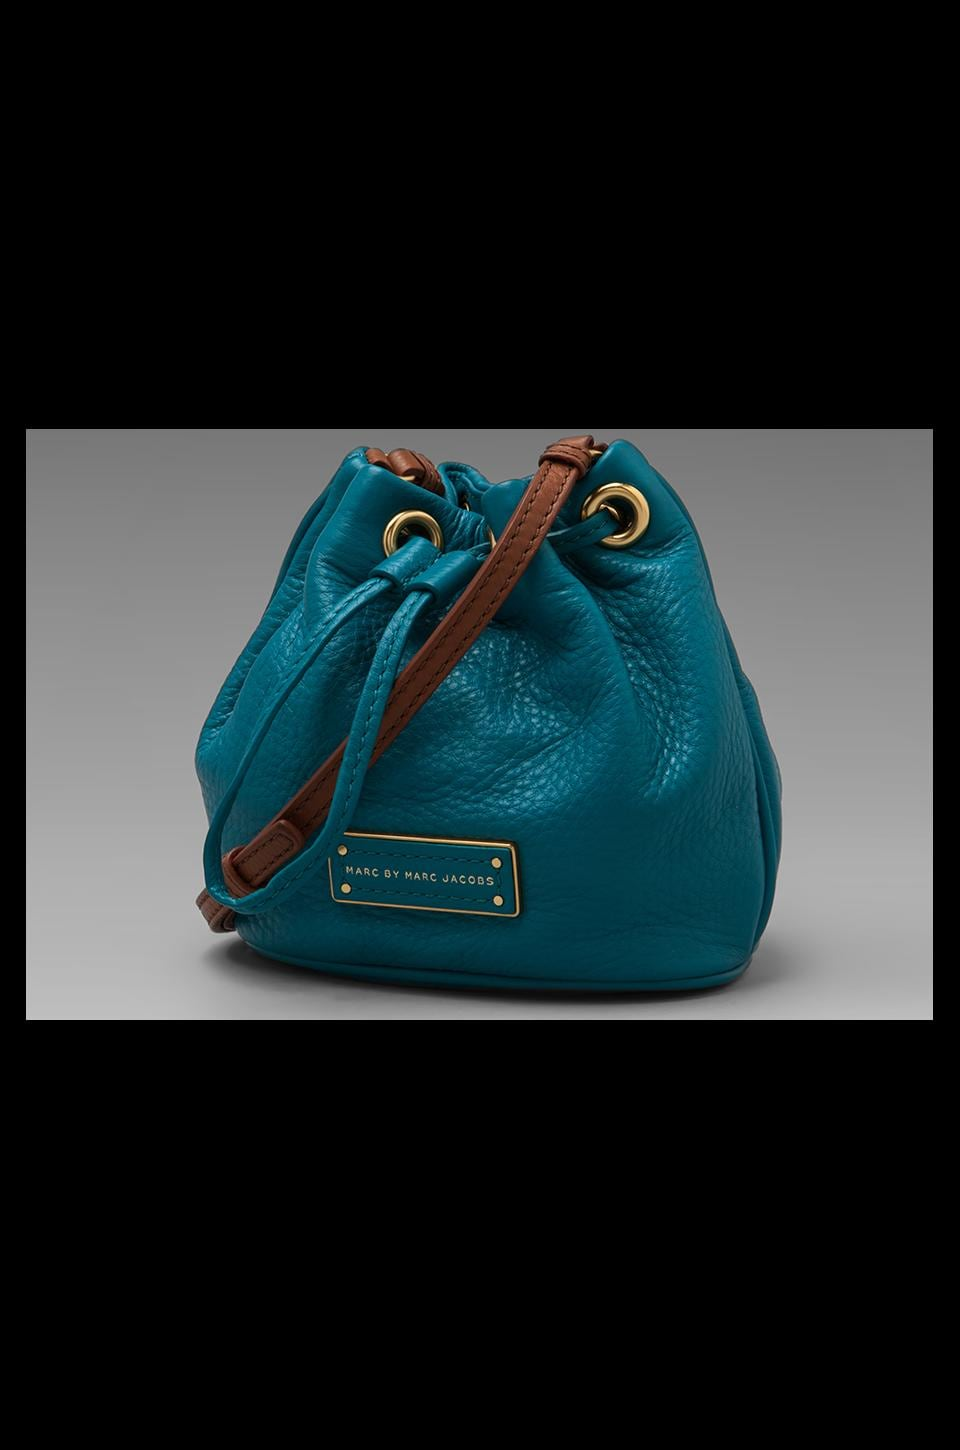 Marc by Marc Jacobs Too Hot to Handle Mini Drawstring in Deep Teal Multi